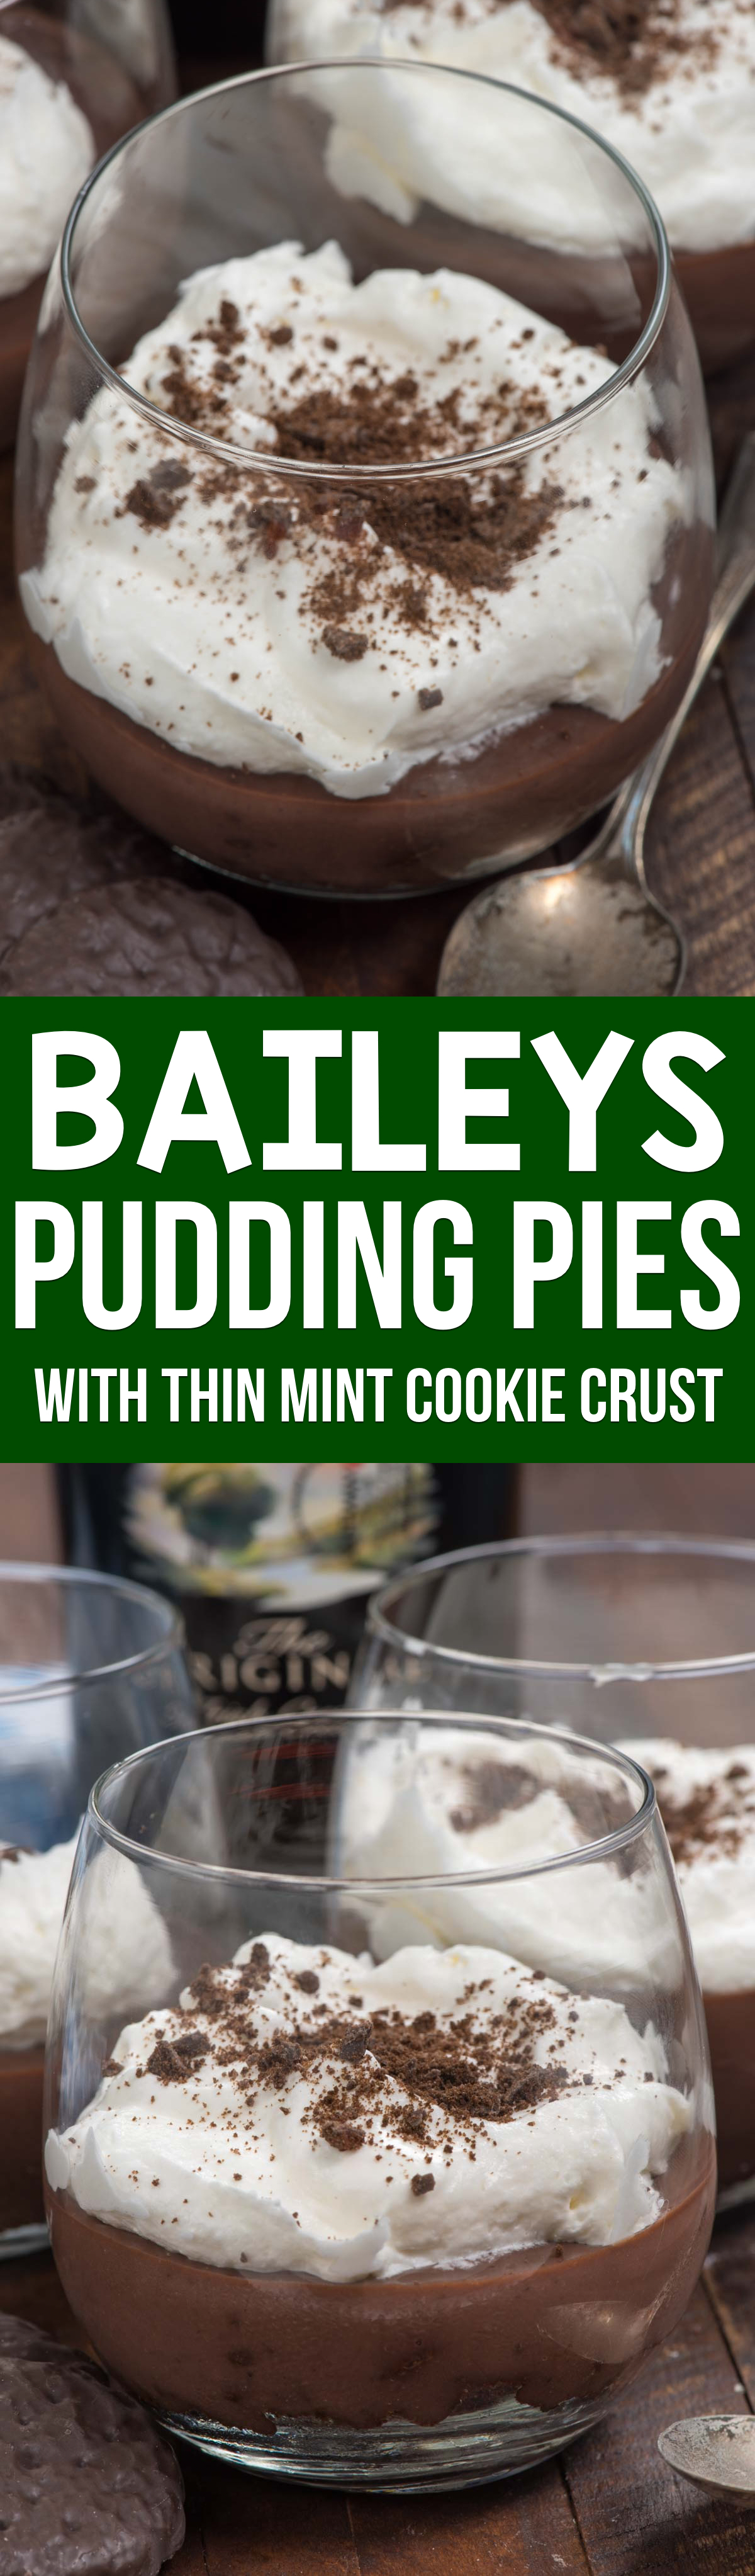 Baileys Pudding Pies are EASY to make using chocolate pudding mix and whipped cream! They have a THIN MINT COOKIE crust and taste so much like Baileys.